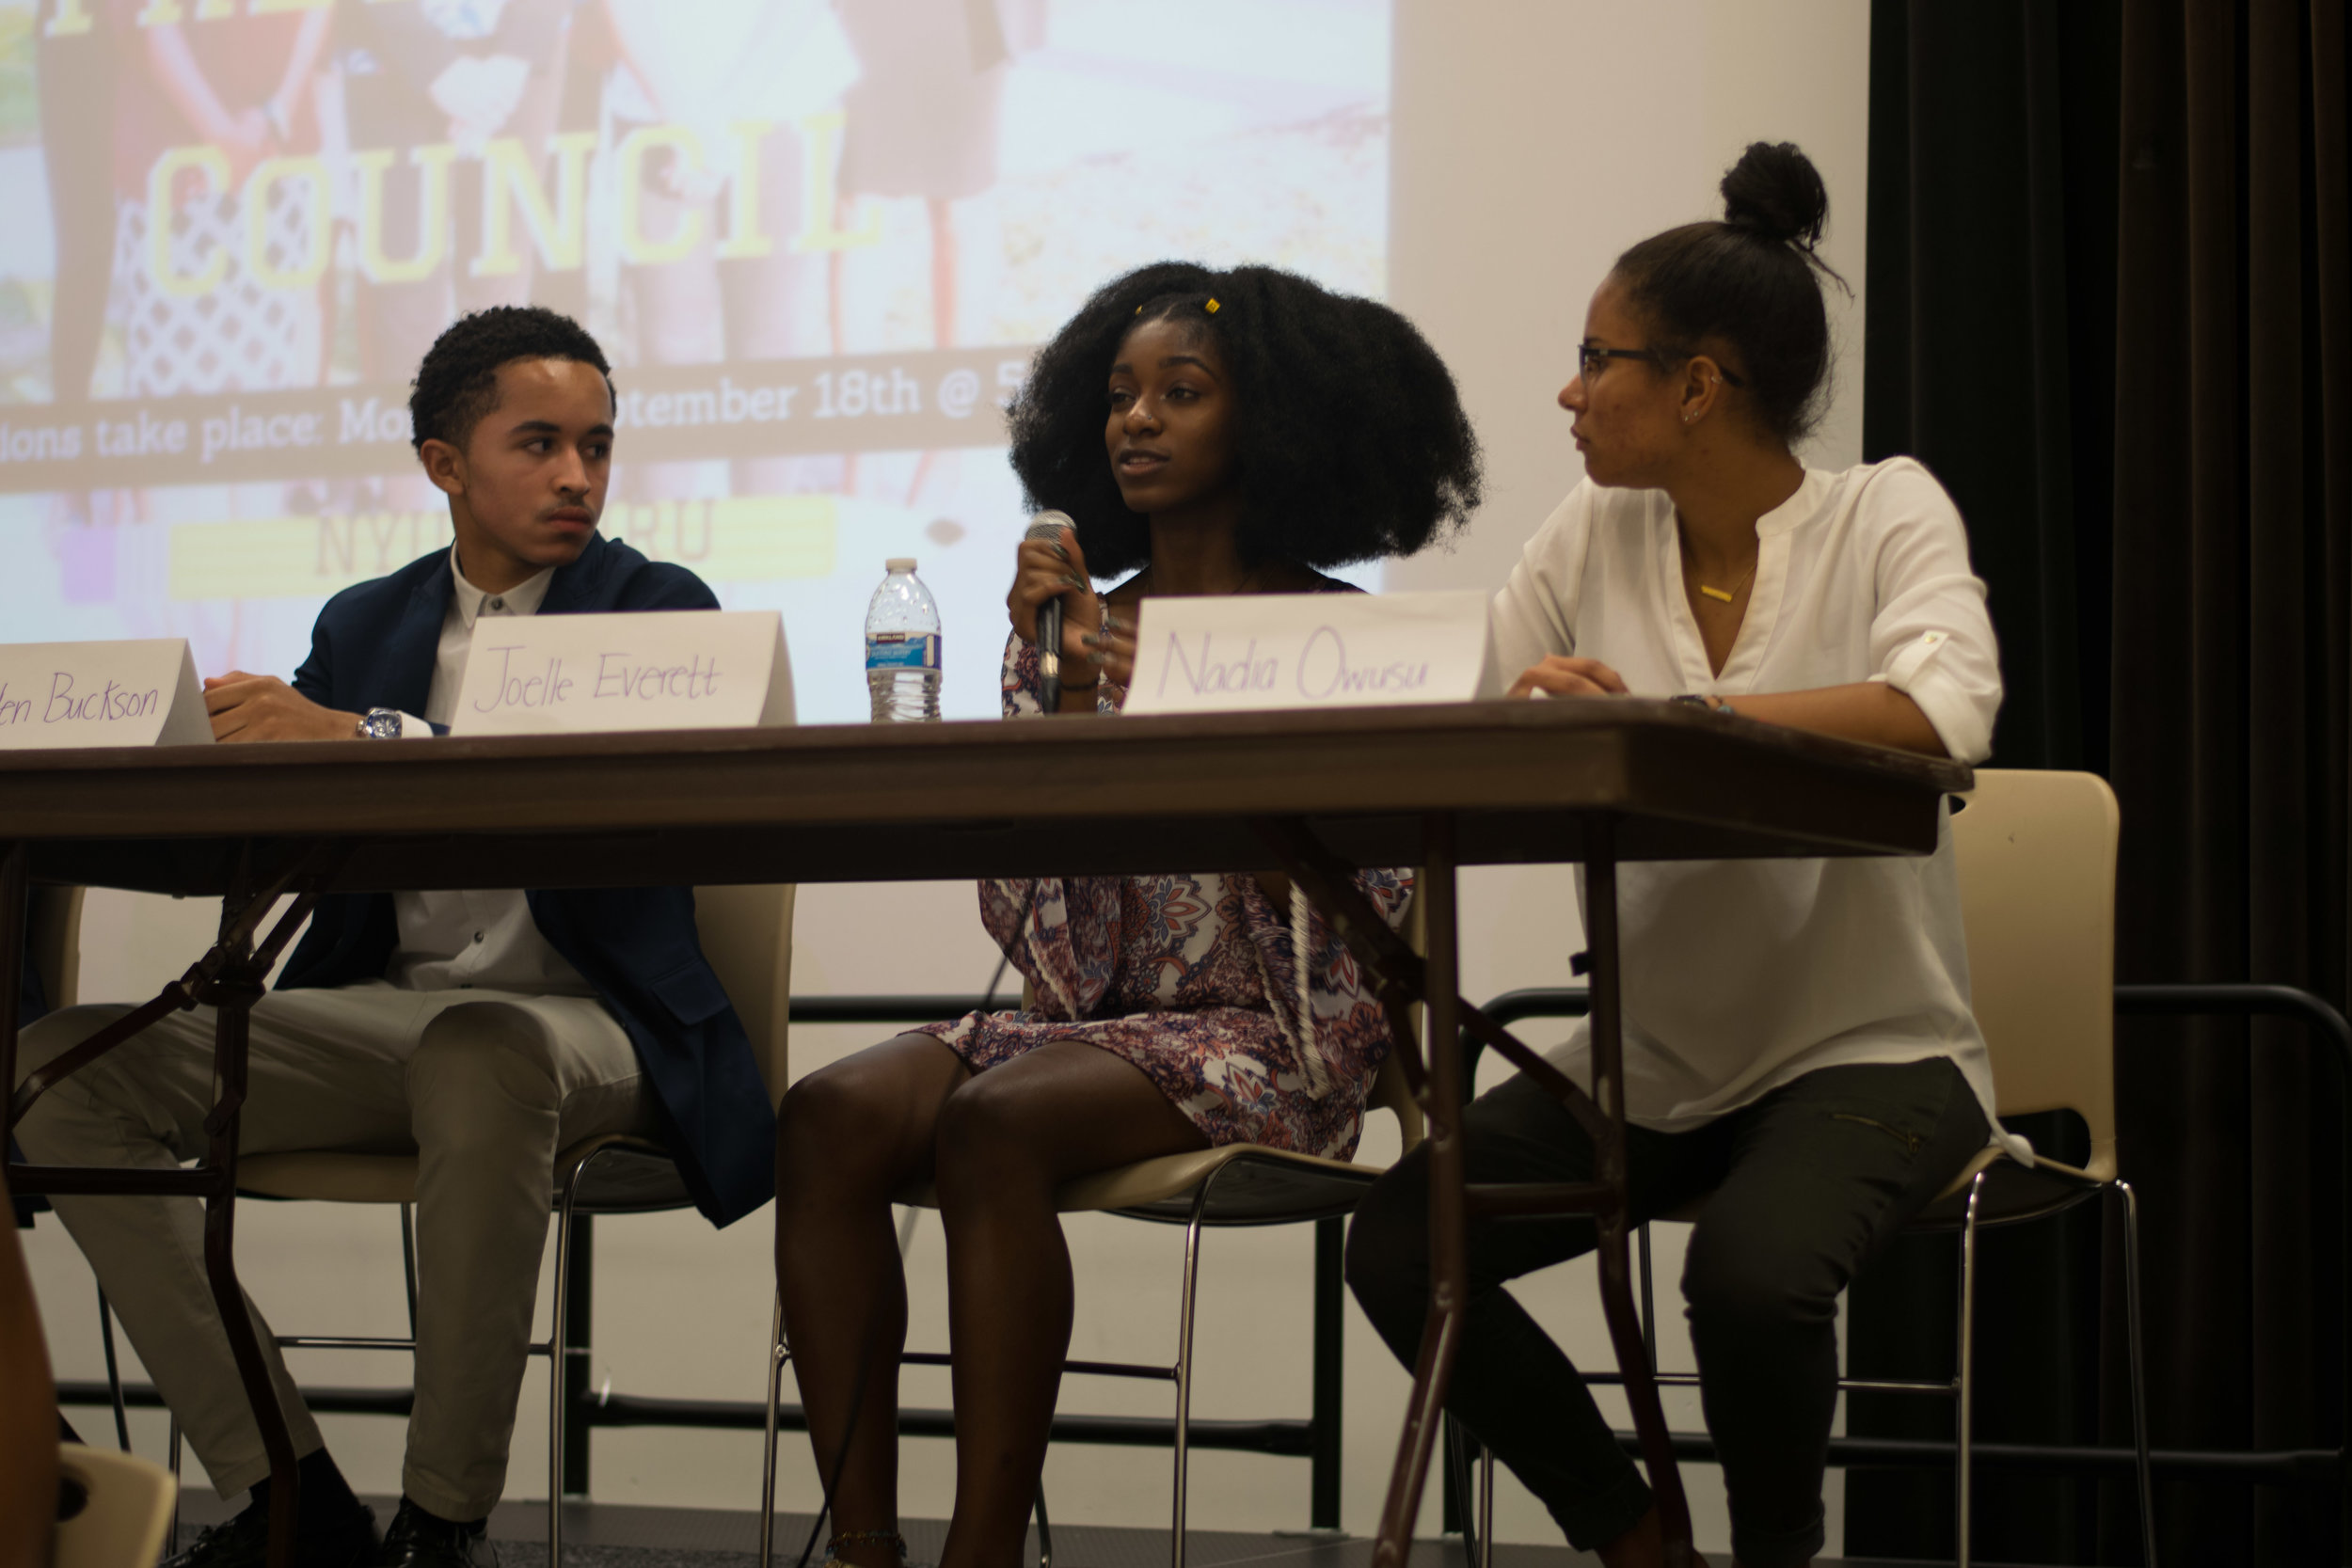 Landen Buckson (left), Joelle Everett (middle), and Nadia Owusu (right) answer a question from an audience member at the 2017-2018 Black Student Union Freshman Council elections on Monday, Sept. 18, 2017. This person asked what is one goal the candidates would like to achieve if elected vice president of the council. Photo by Amina Lampkin.